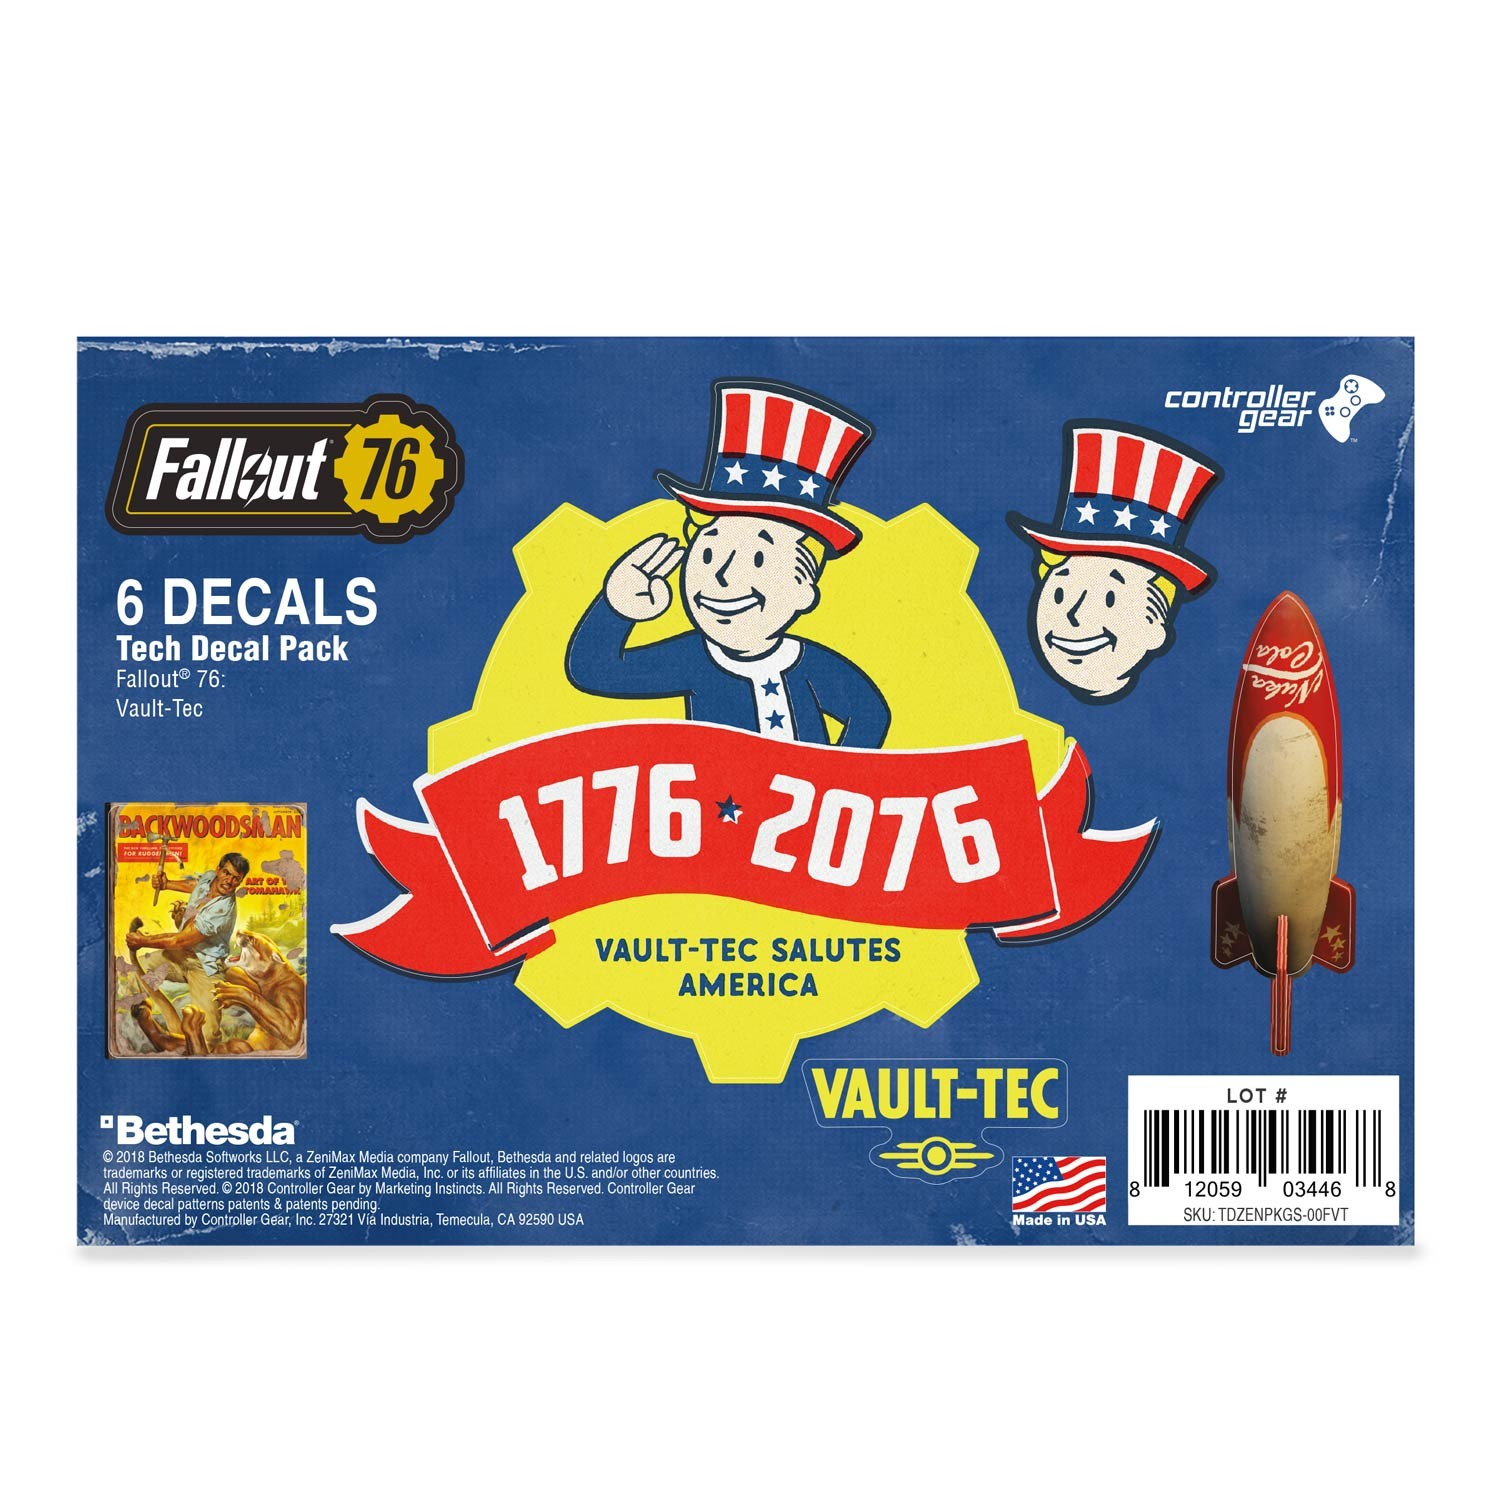 Fallout 76: Vault-Tec Tech Skin Pack - Officially Licensed by Bethesda